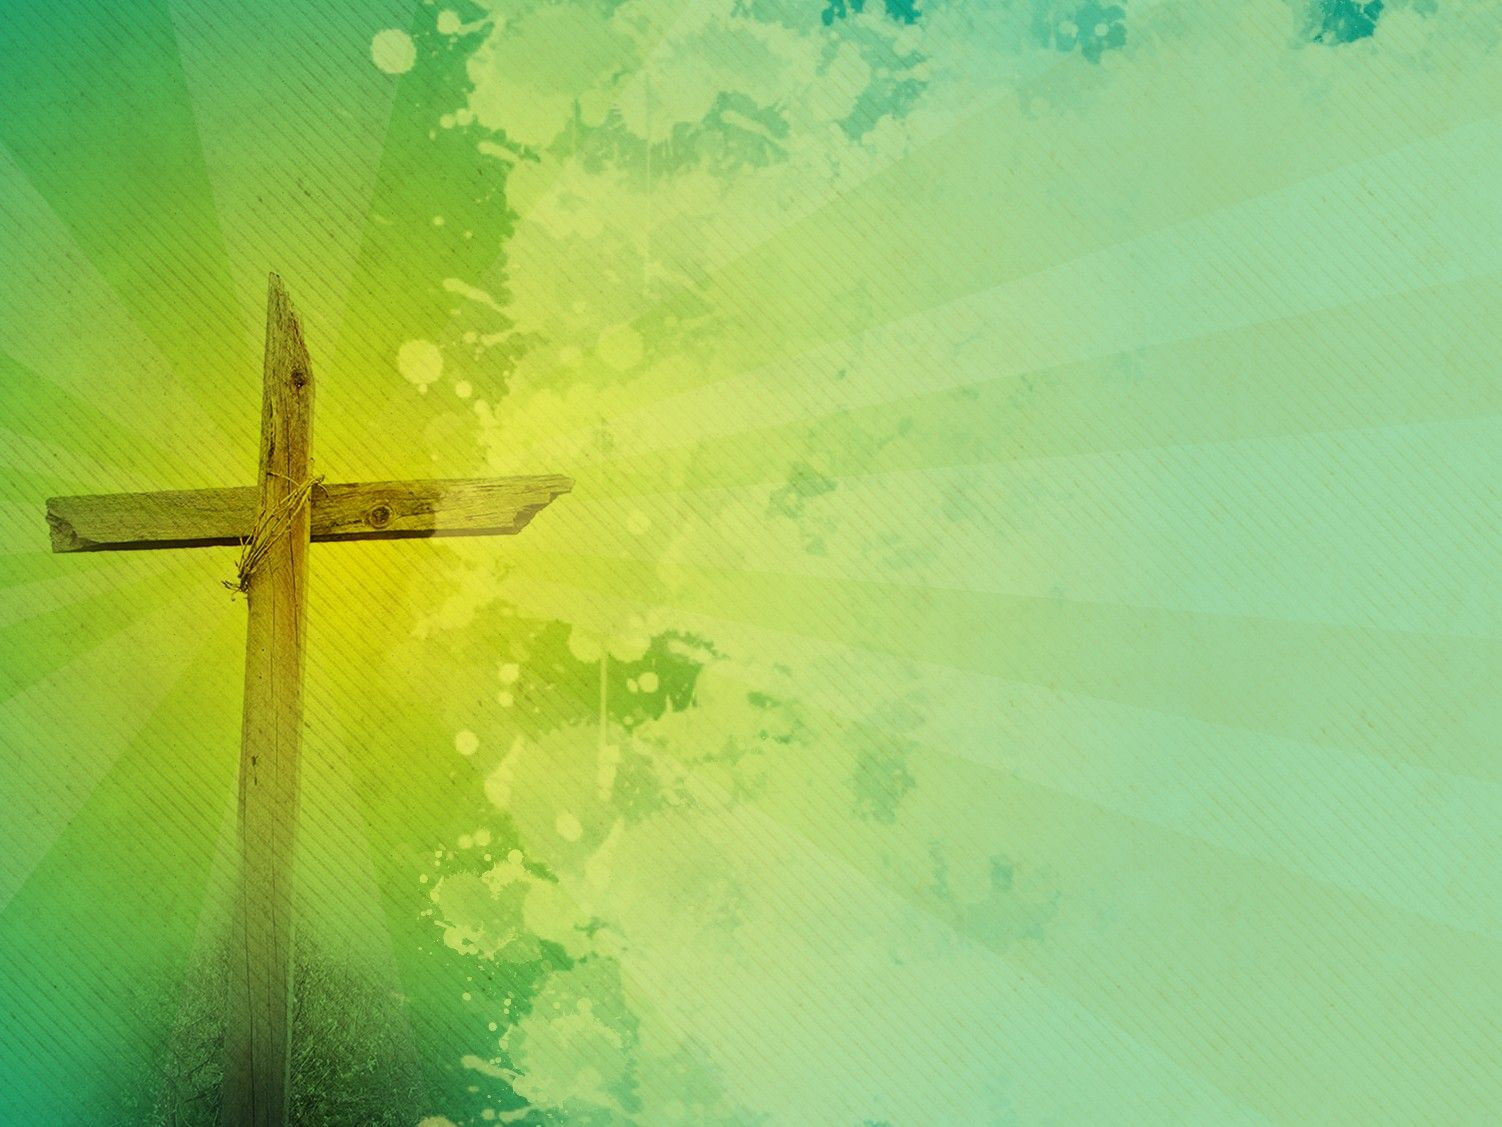 ... Powerpoint | Pinterest | Christian backgrounds, Backgrounds and